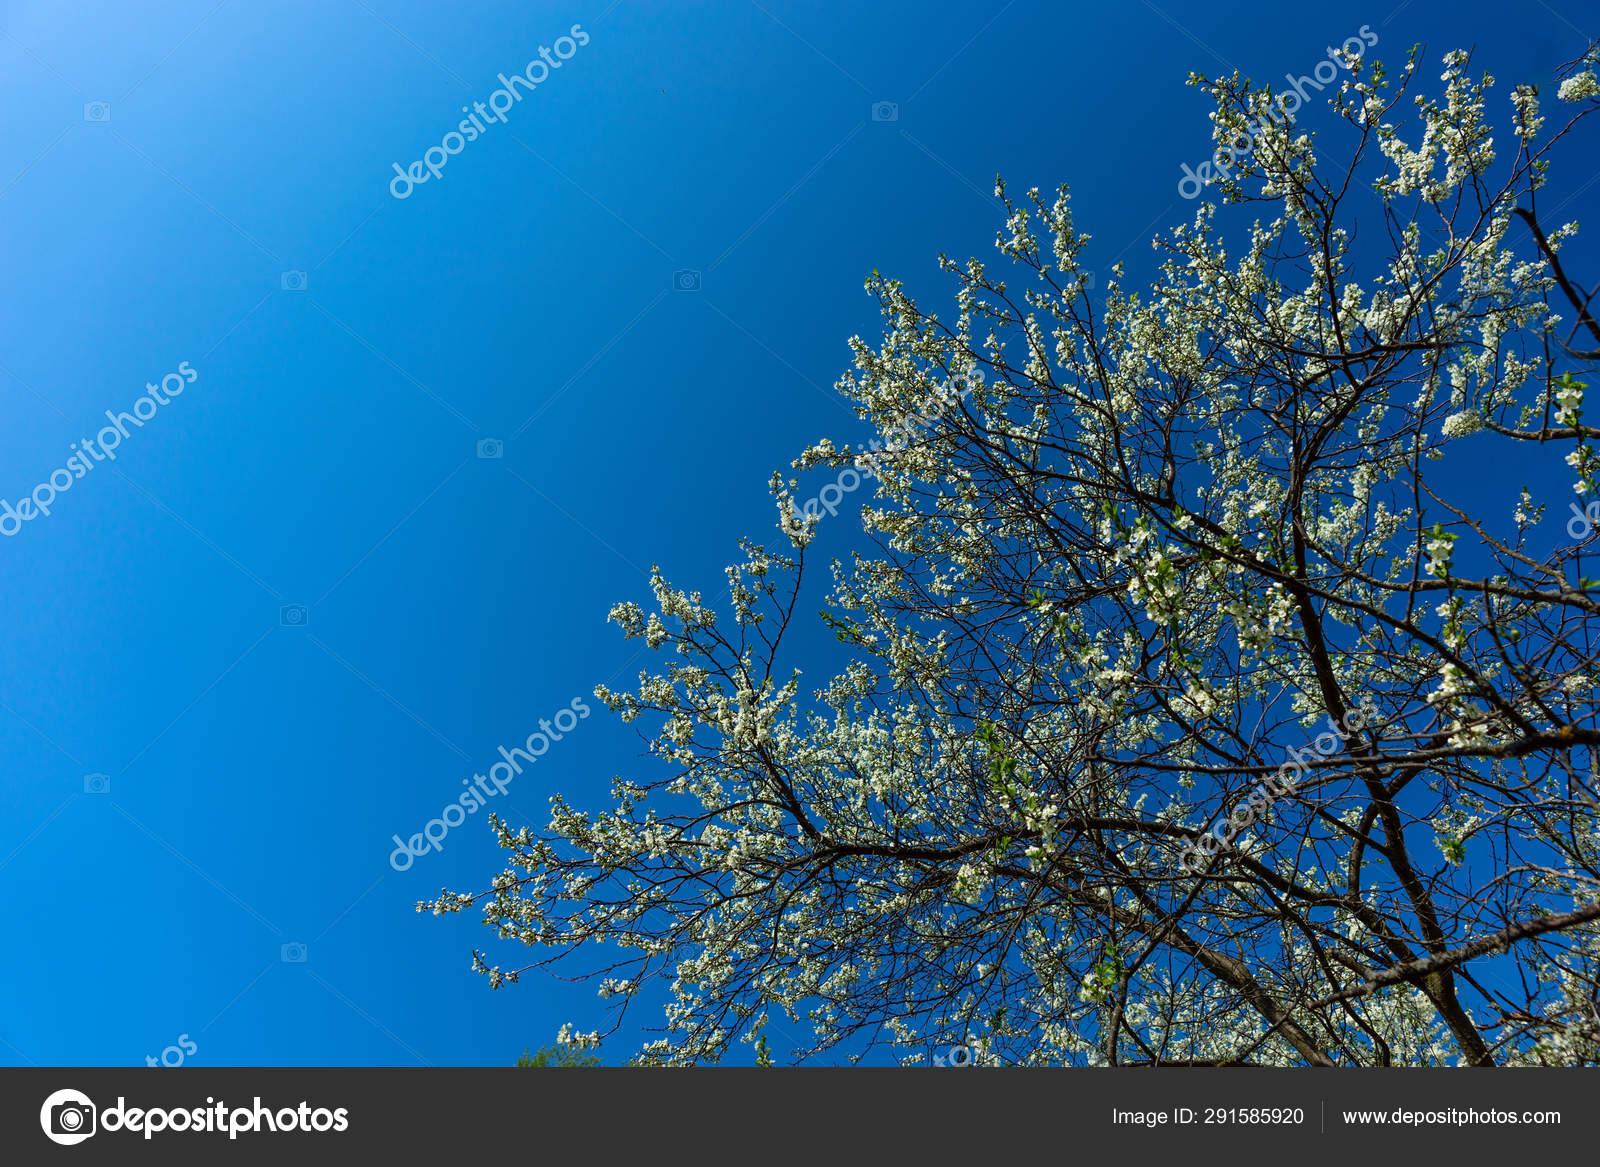 Beauty Of Nature Floral Desktop Background Blooming Closeup Tre